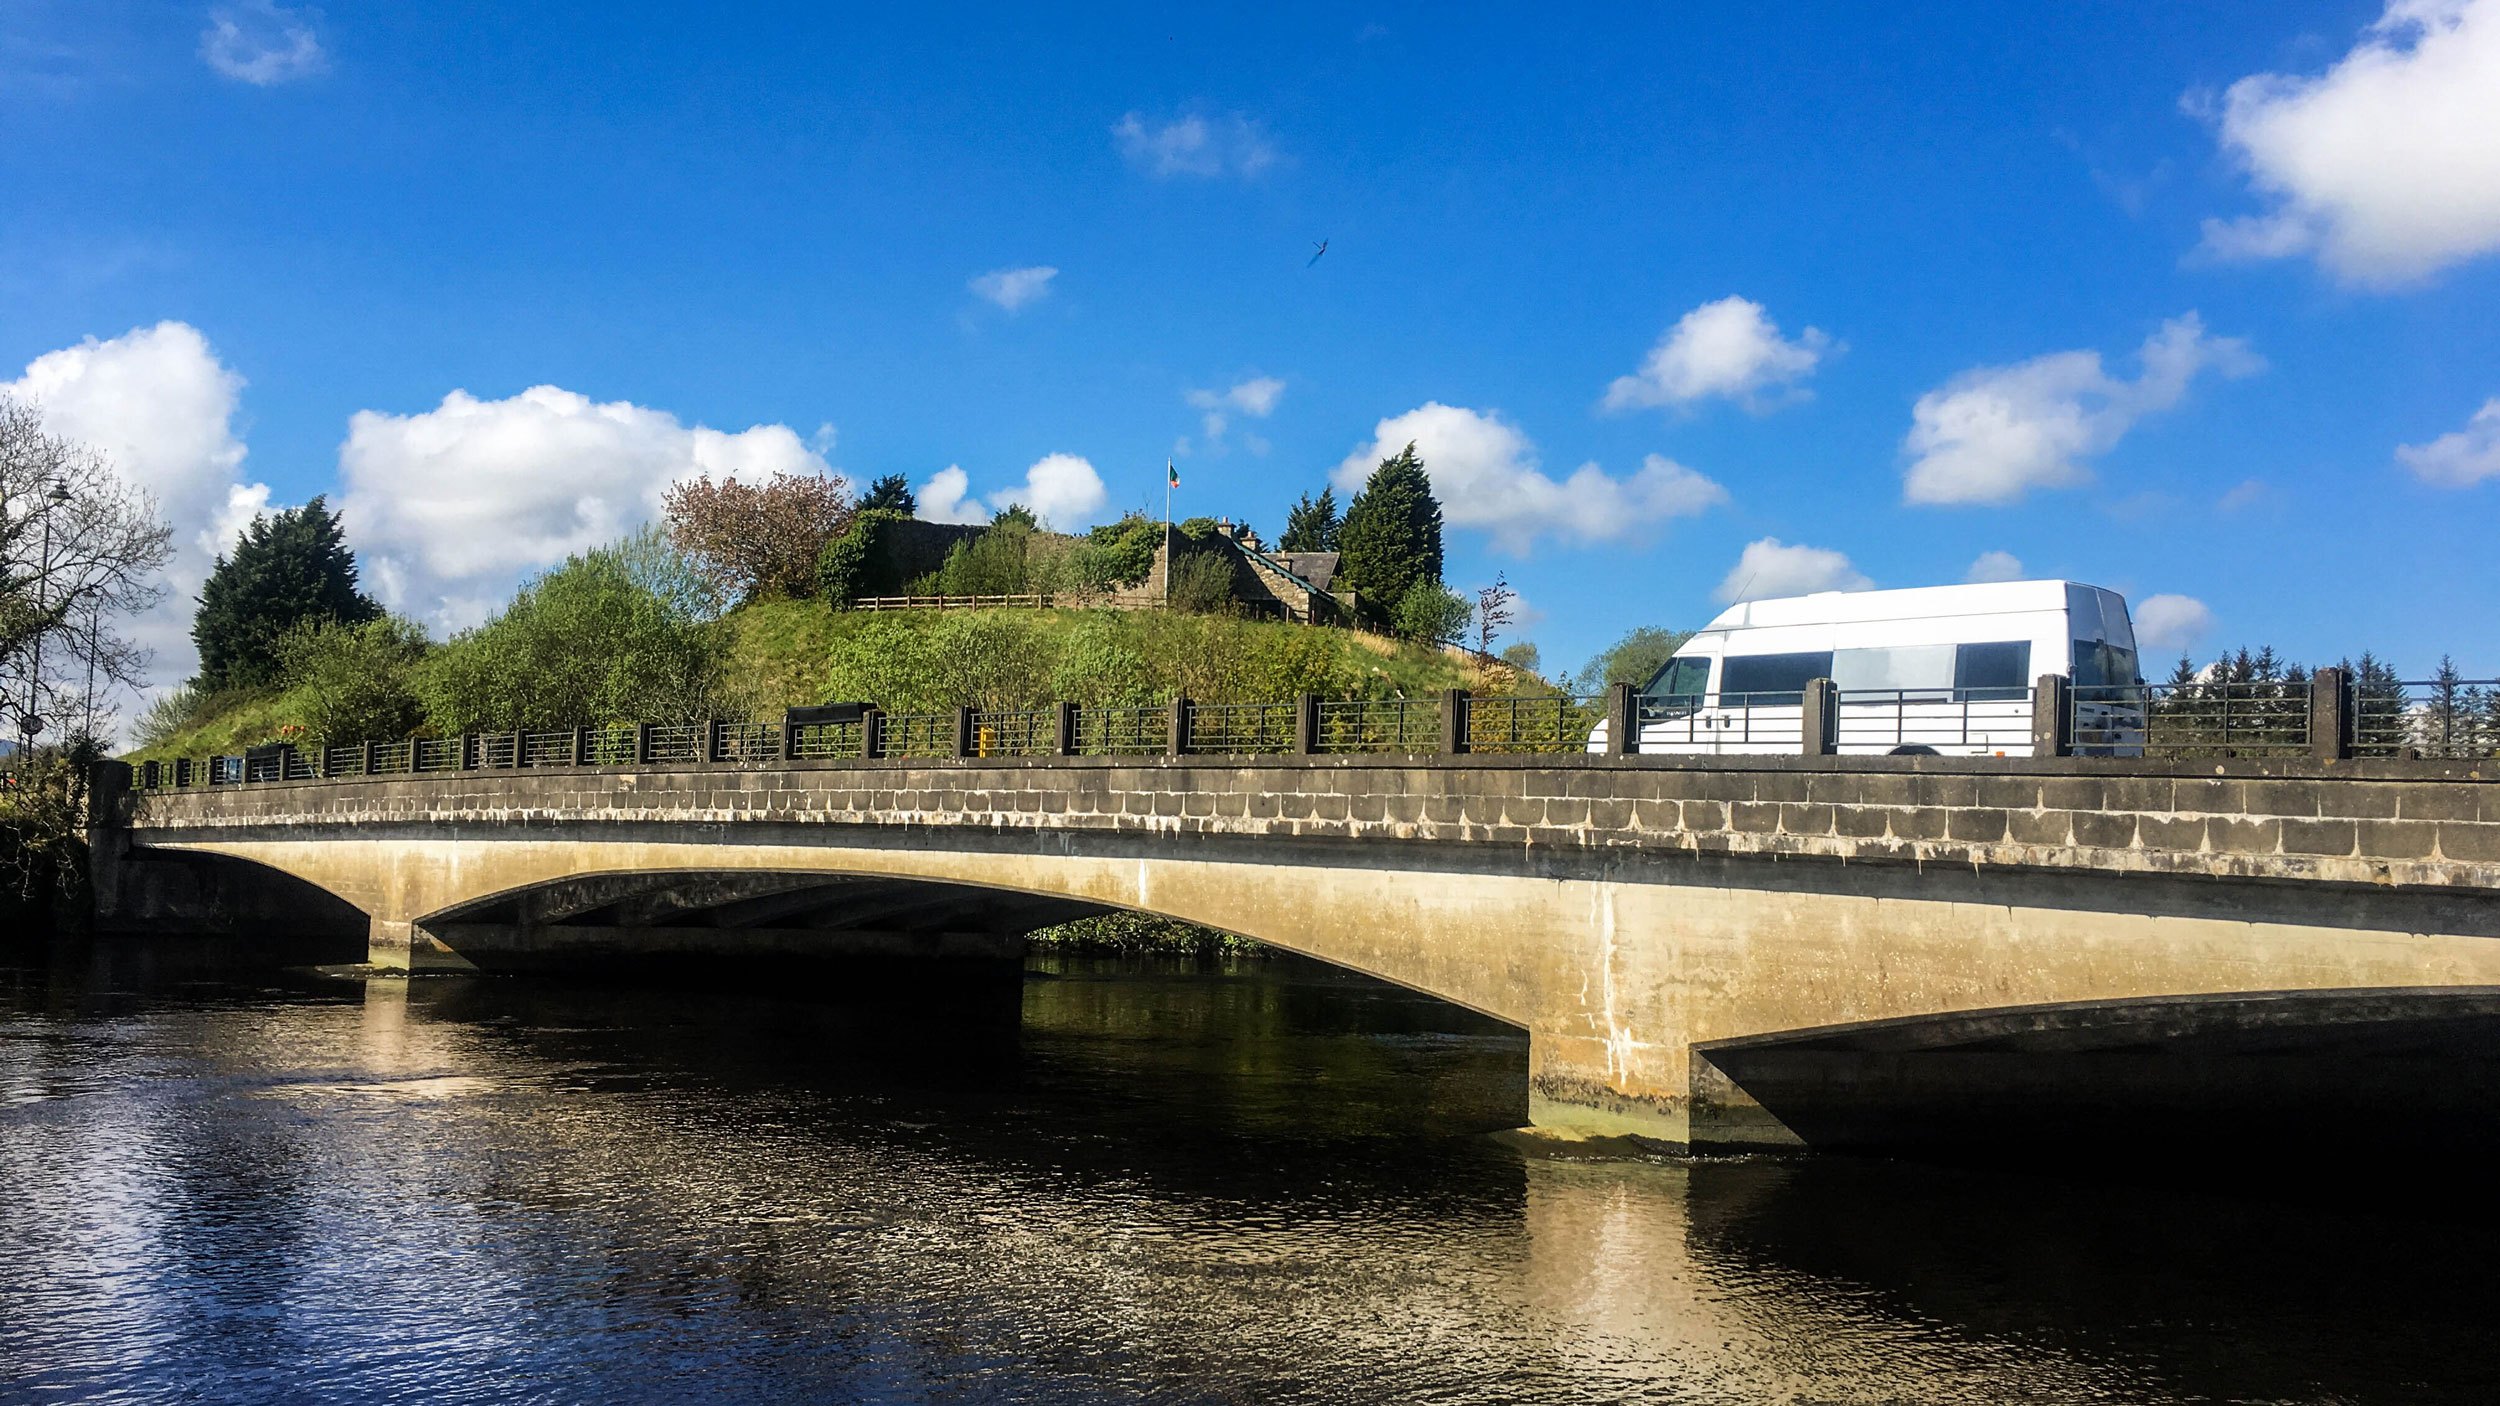 A white van travels over a grey stone bridge on a bright, sunny day under blue skies.